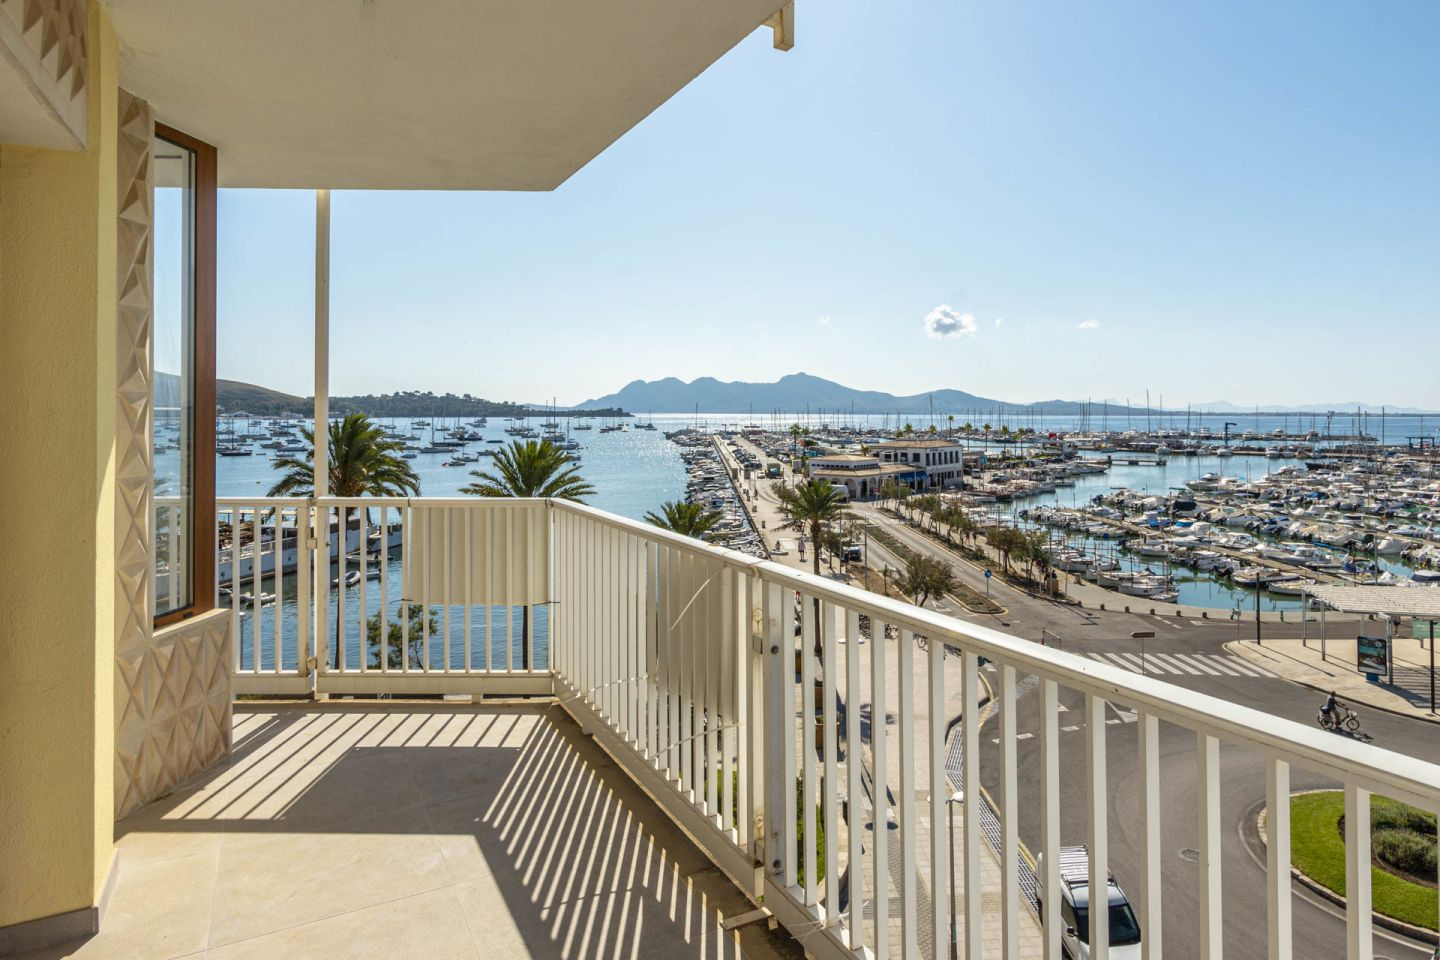 4 Bed Apartment for sale in PUERTO POLLENSA 9